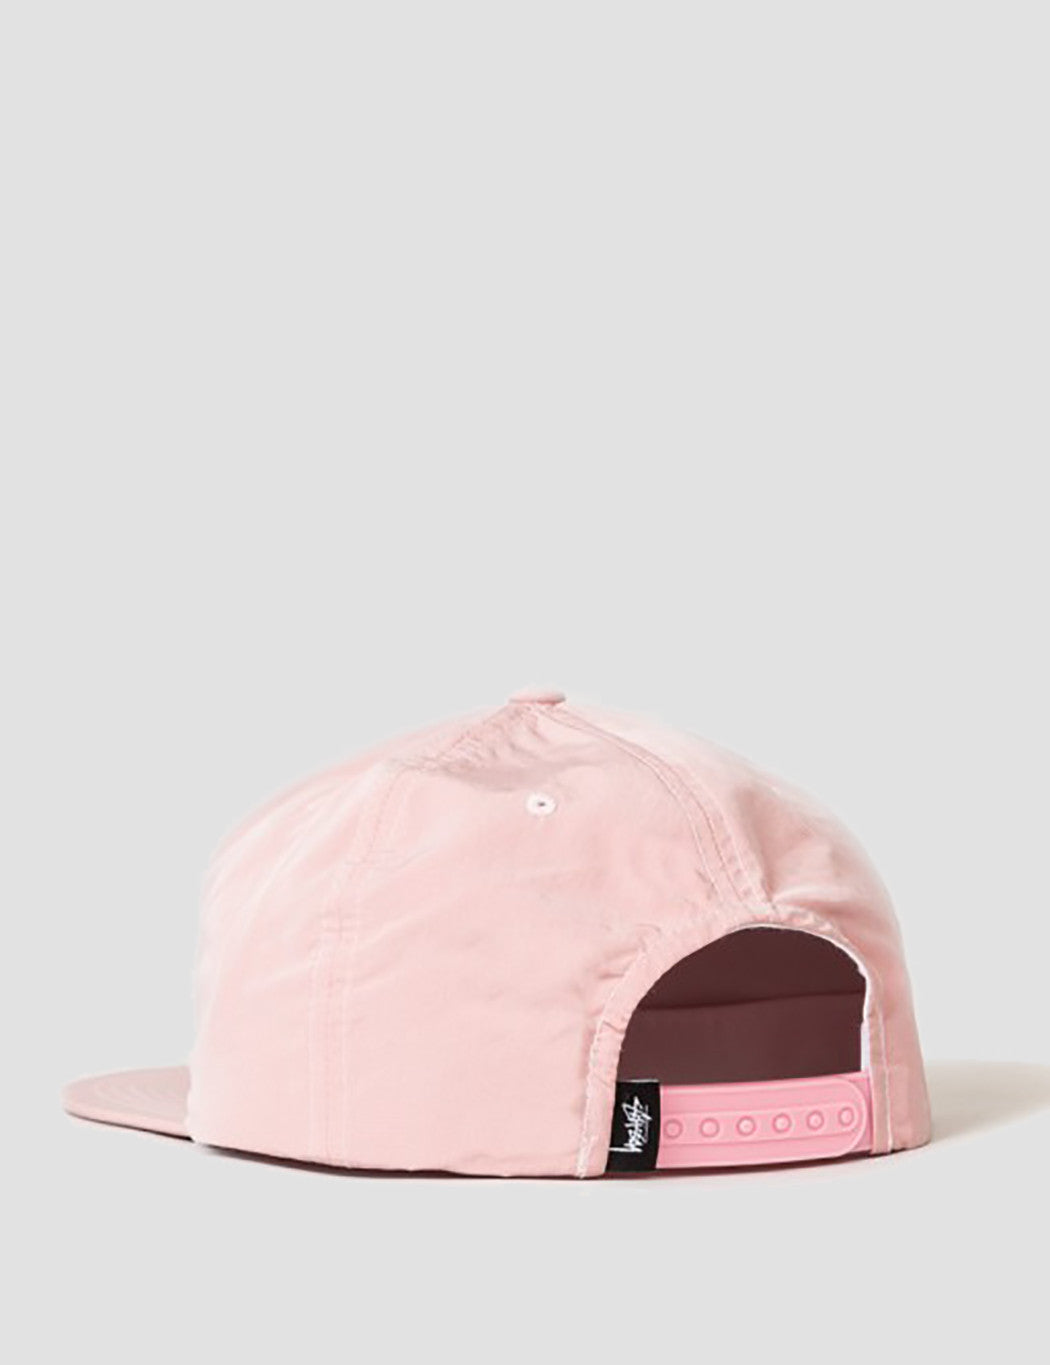 Stussy Reflective Tape Cap - Pink  92d24e362f4